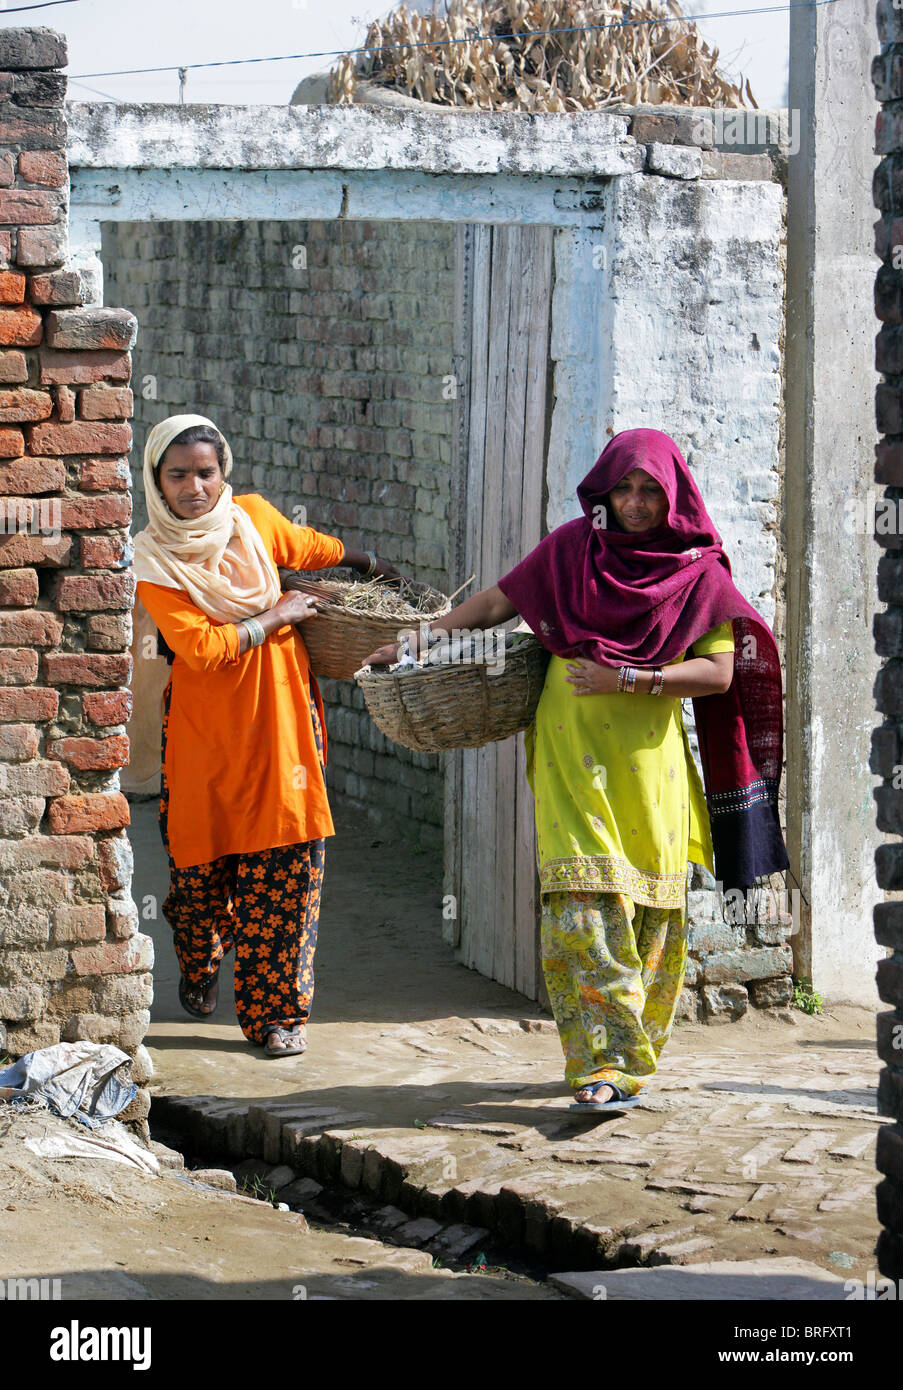 Dalit women from the cast of the untouchables working as scavangers, cleaning human excrements. Uttar Pradesh, India - Stock Image